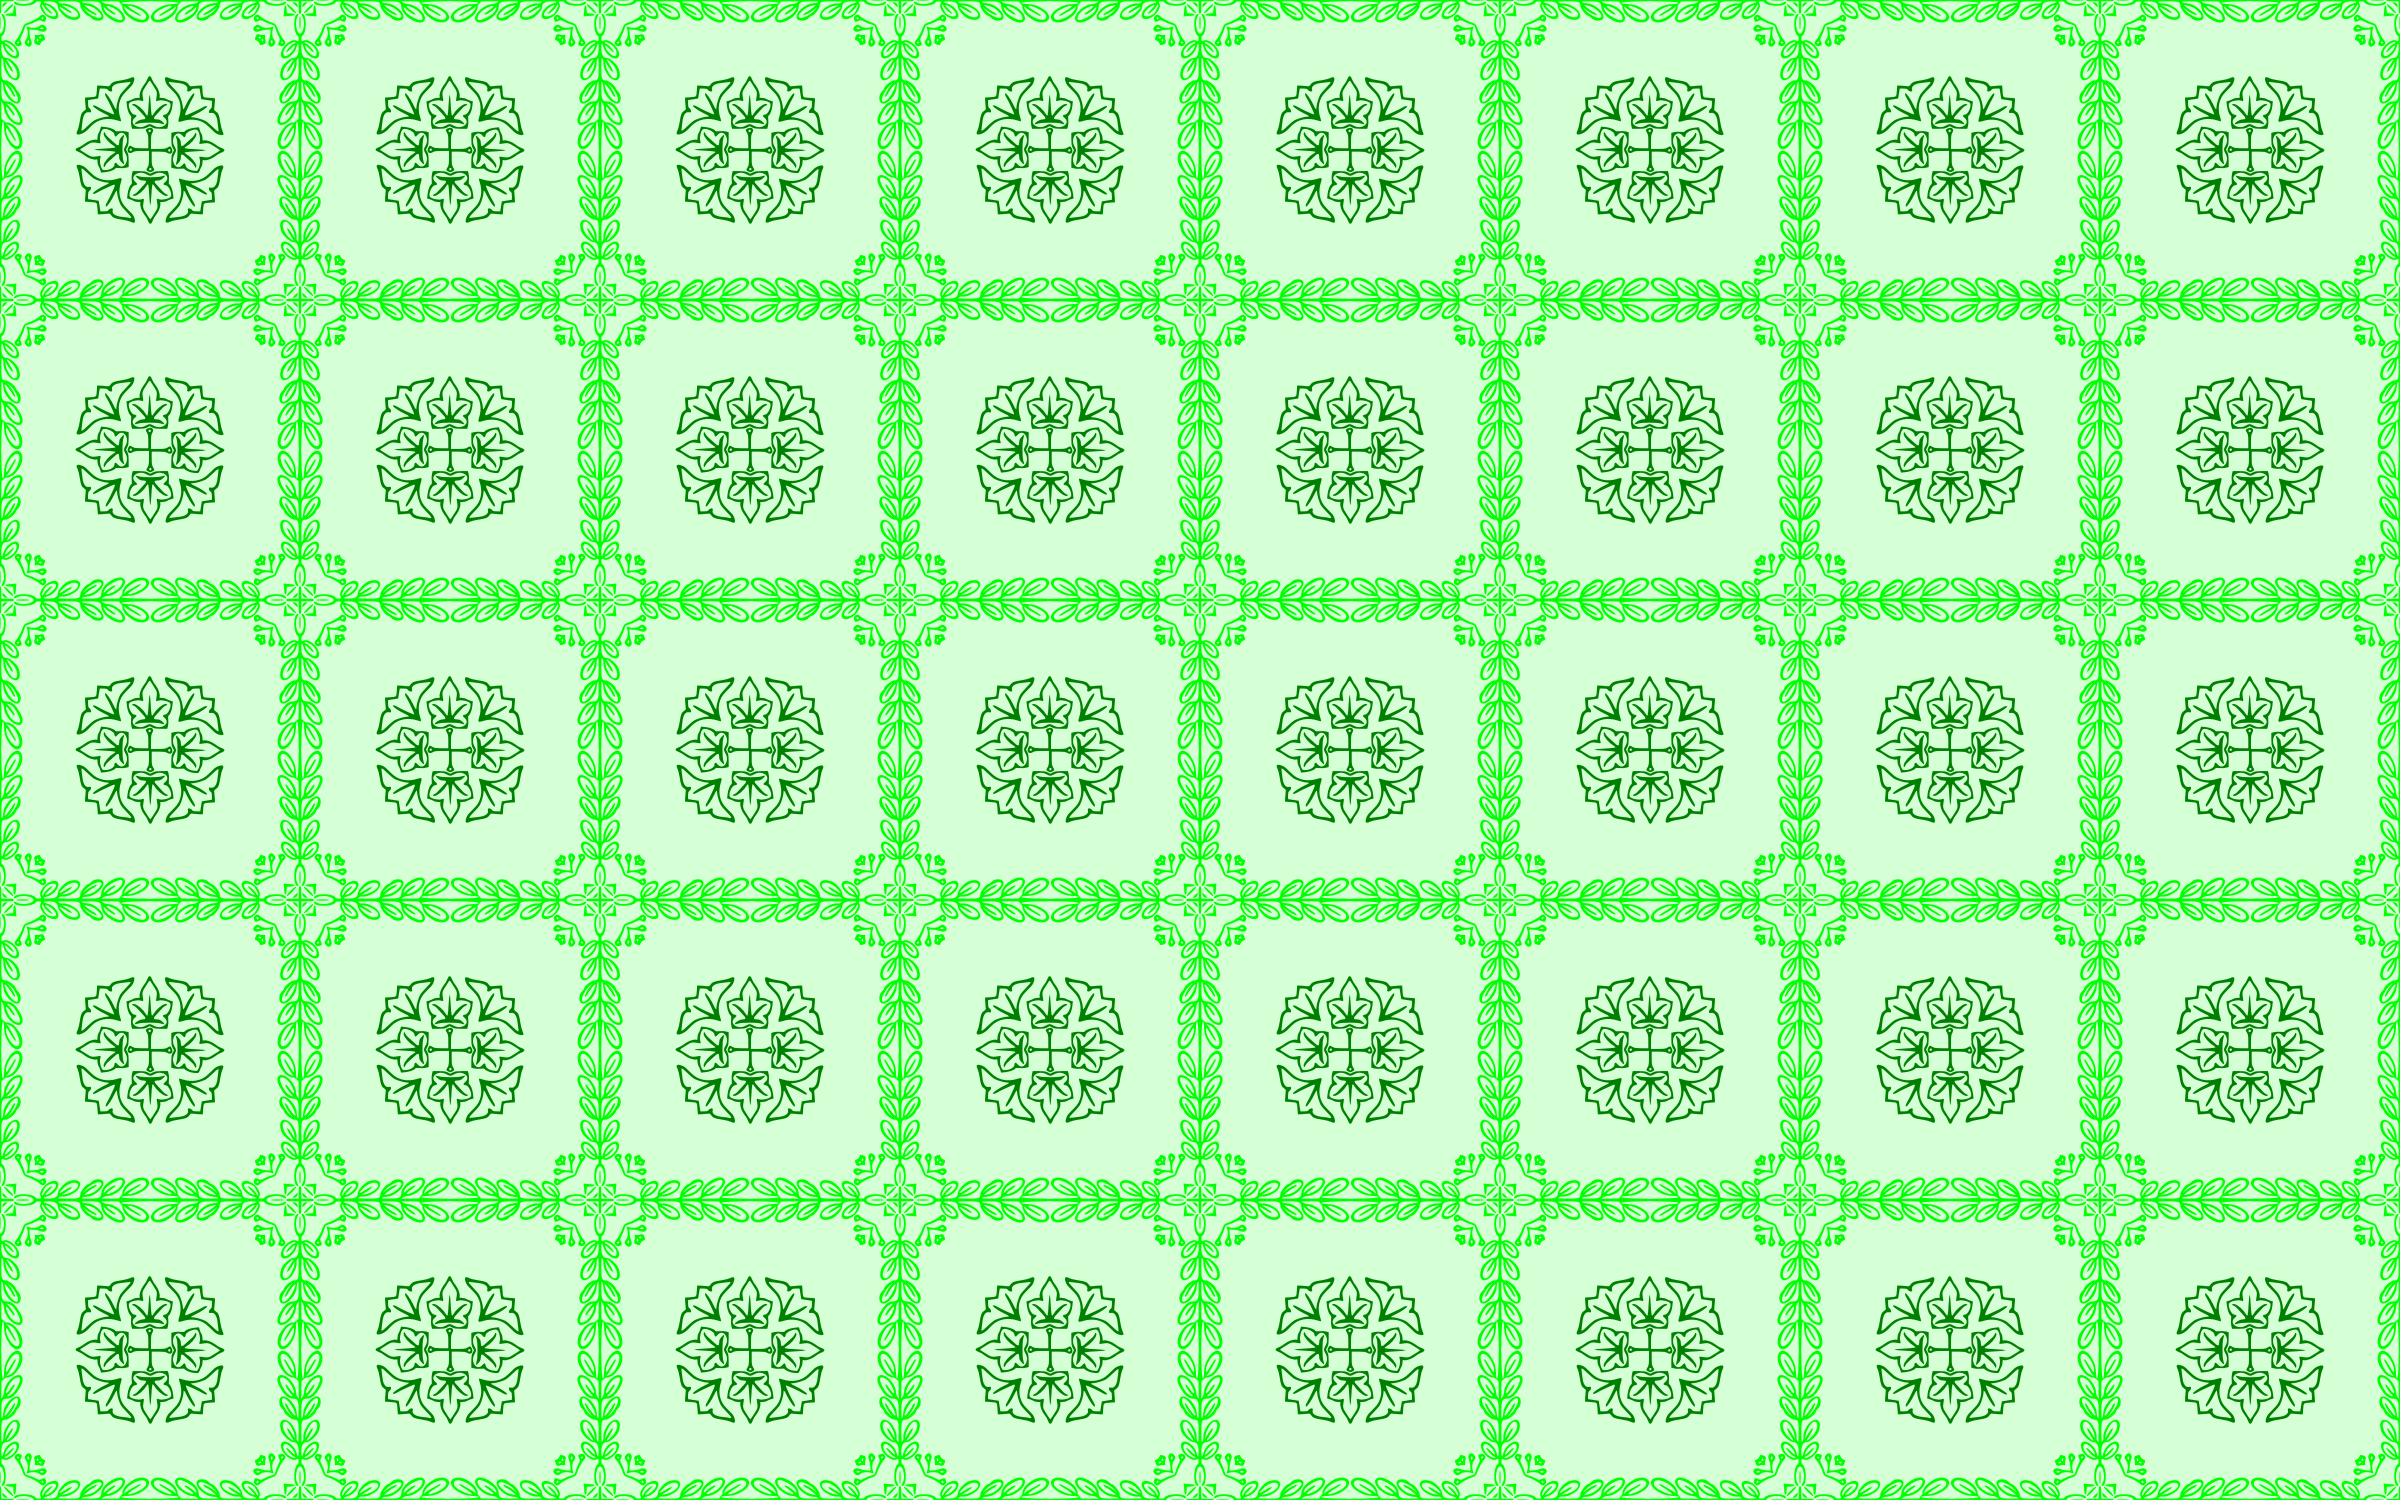 Background pattern 238 (colour 2) by Firkin